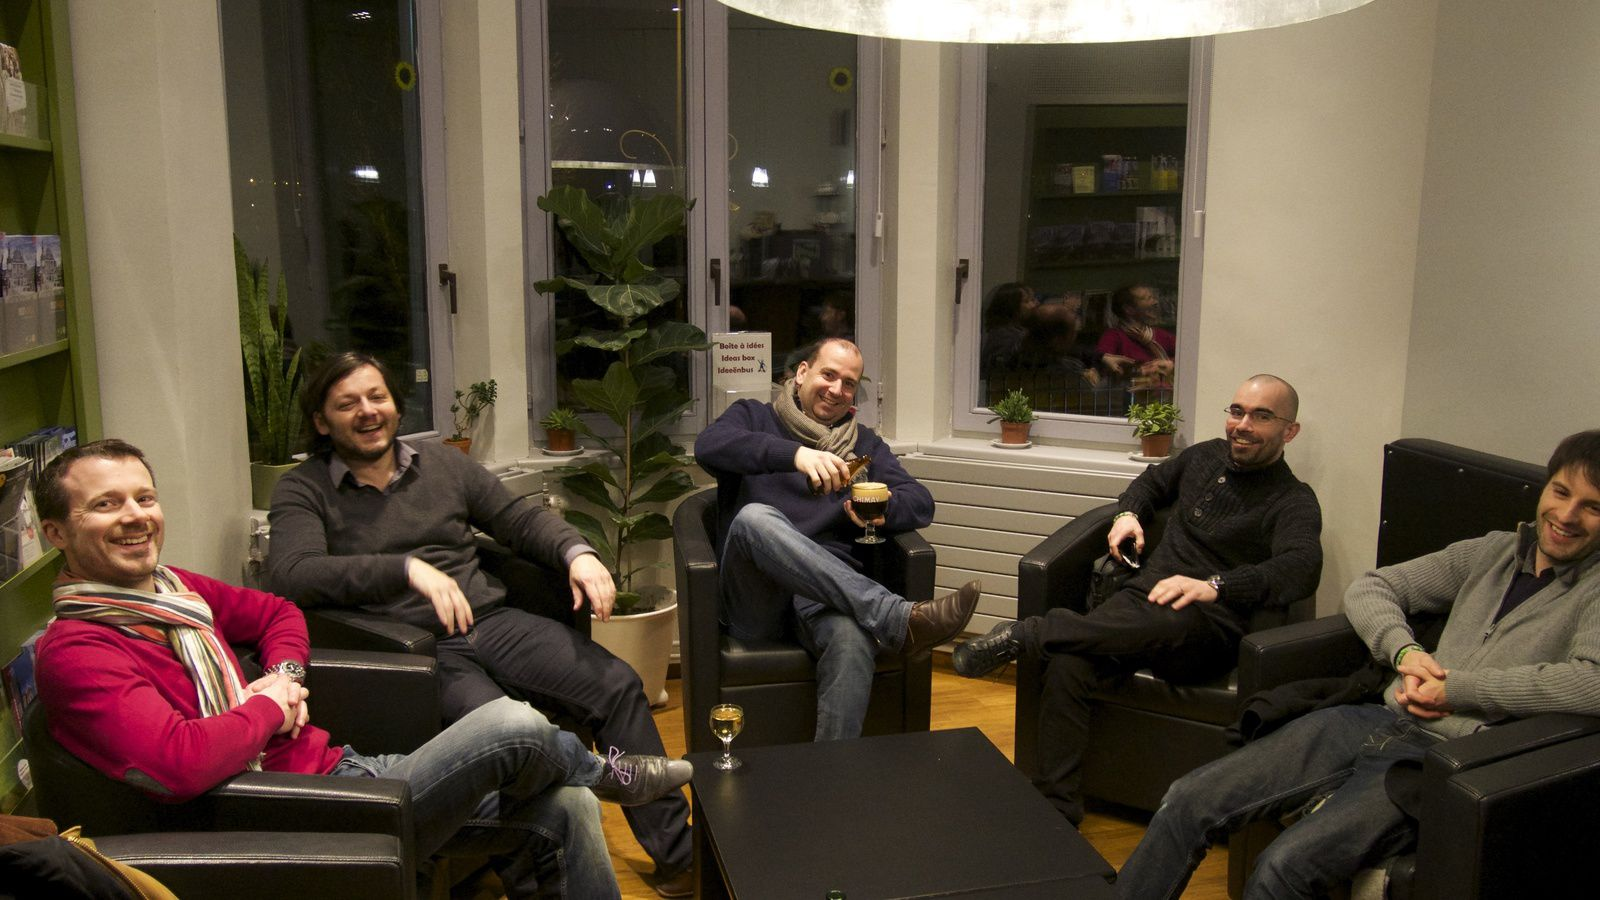 from the left to the right: erwan jerger, matt gwb (also called snoring pig), thibault matray, david slaveofpaint